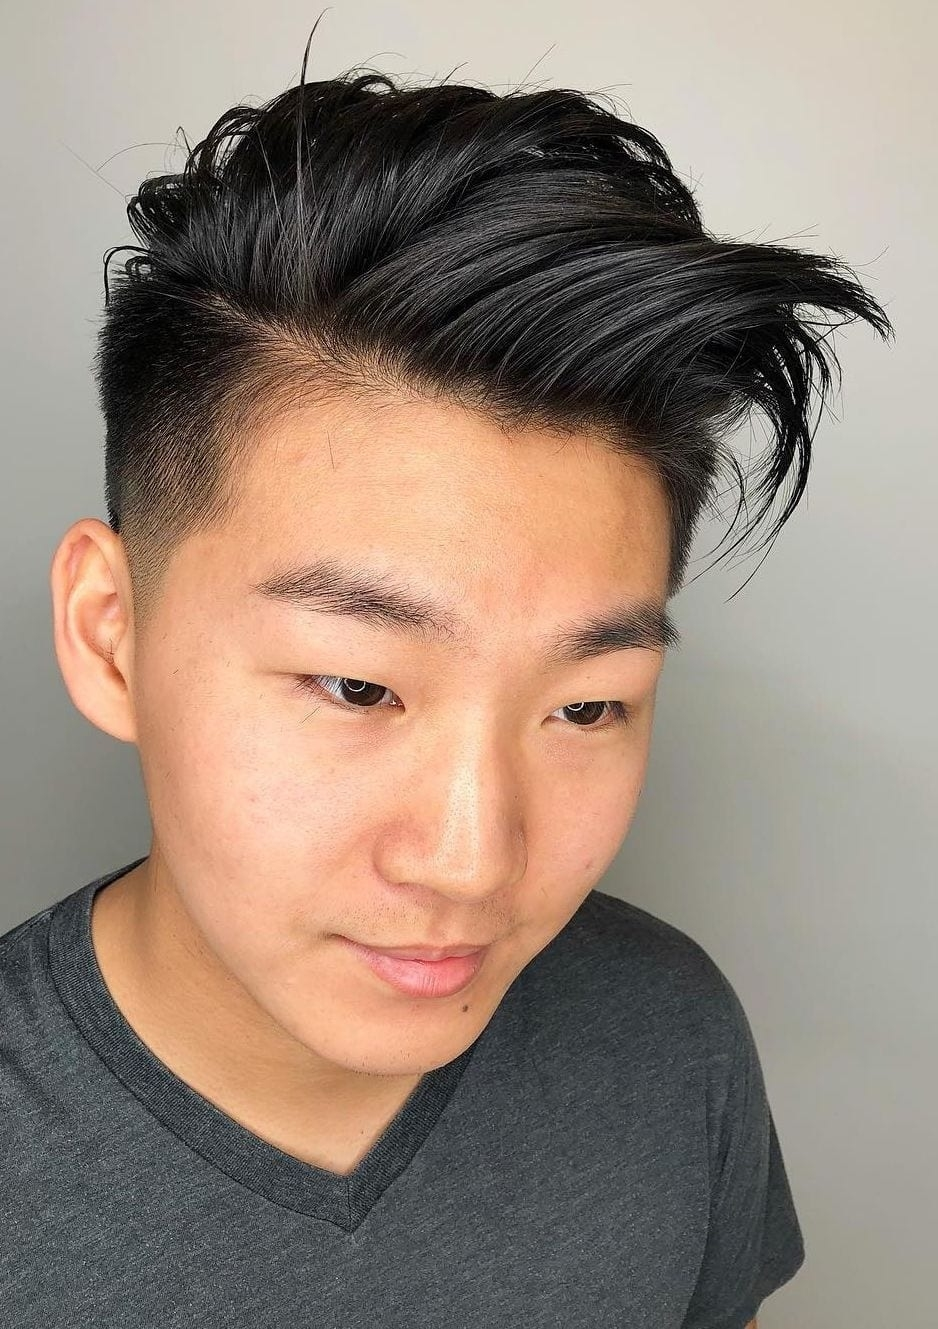 Top 30 Trendy Asian Men Hairstyles 2019 throughout How To Do Asian Hairstyles For Guys